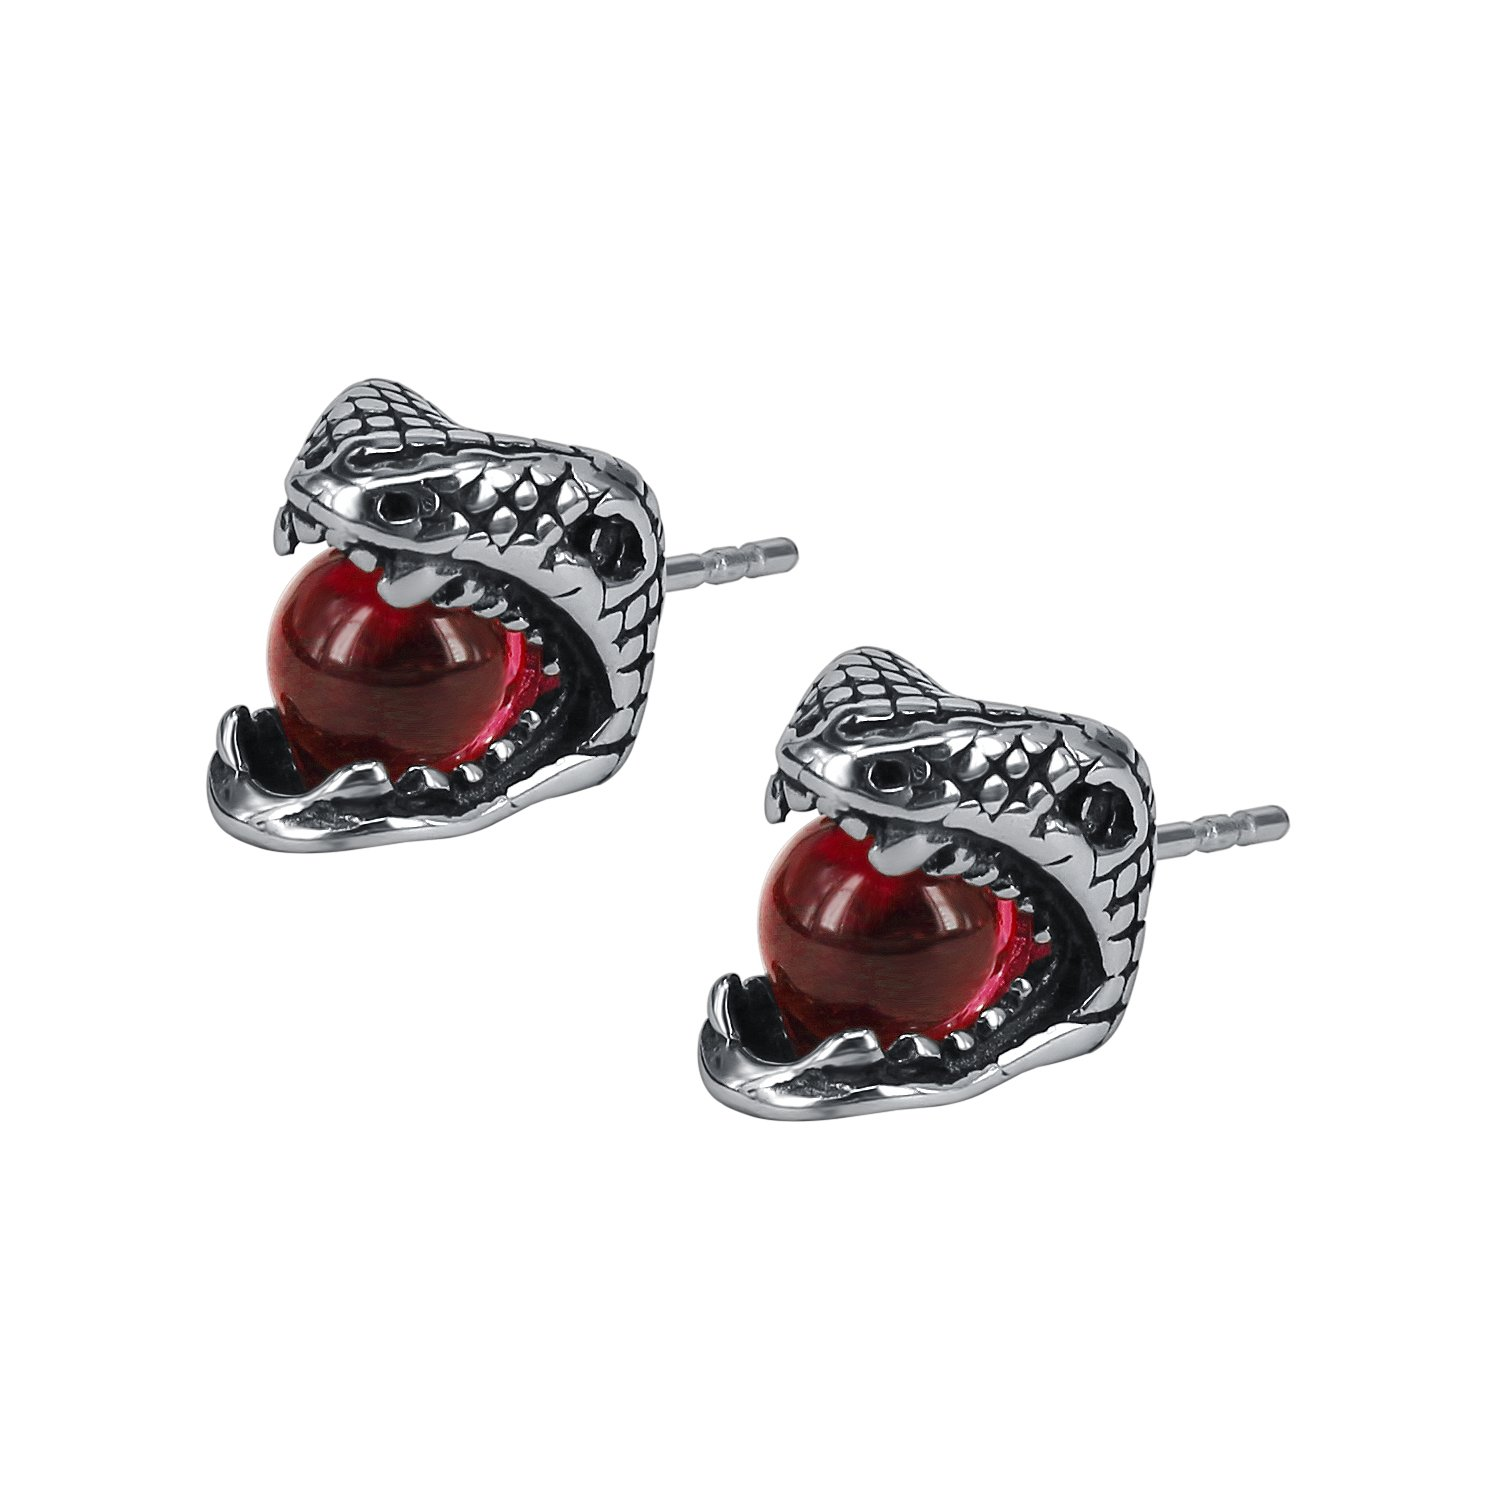 614419a98 Amazon.com: Nickel Free Surgical Steel Earrings Studded Snake Head With  Round CZ Stone in the Mouth Cool Earrings Men (Red): Jewelry